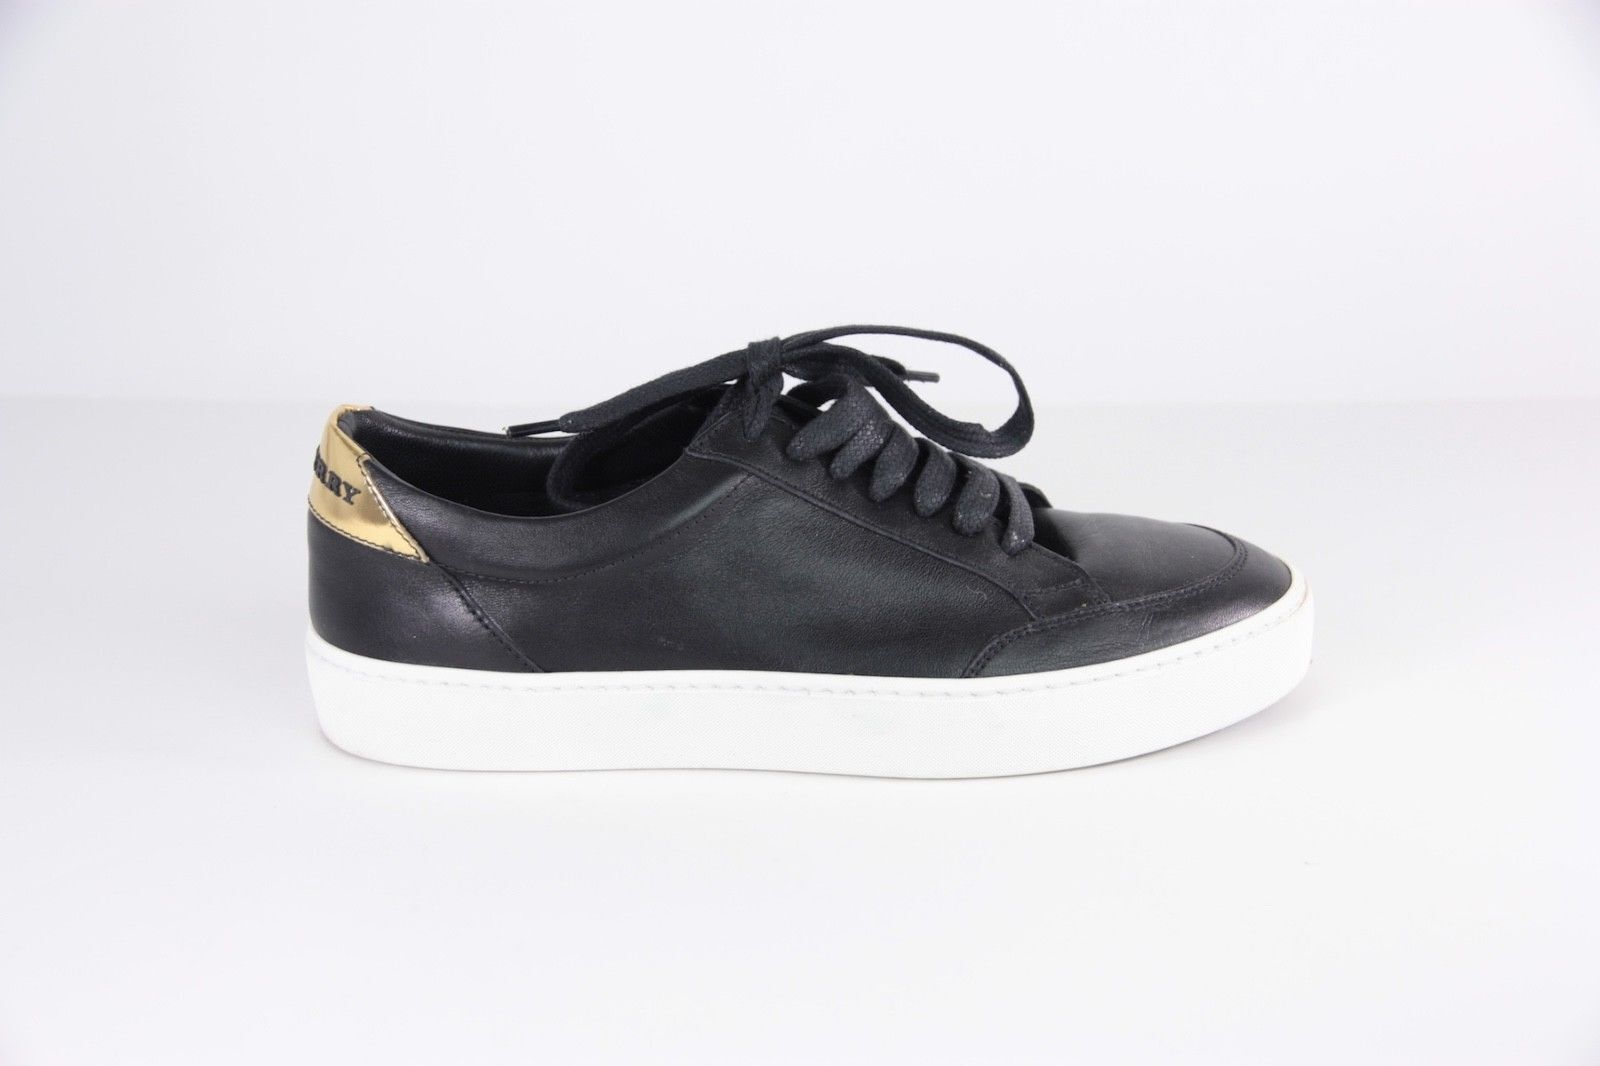 Women's Burberry Black White Sole Salmond Sneakers Trainers 37.5  395